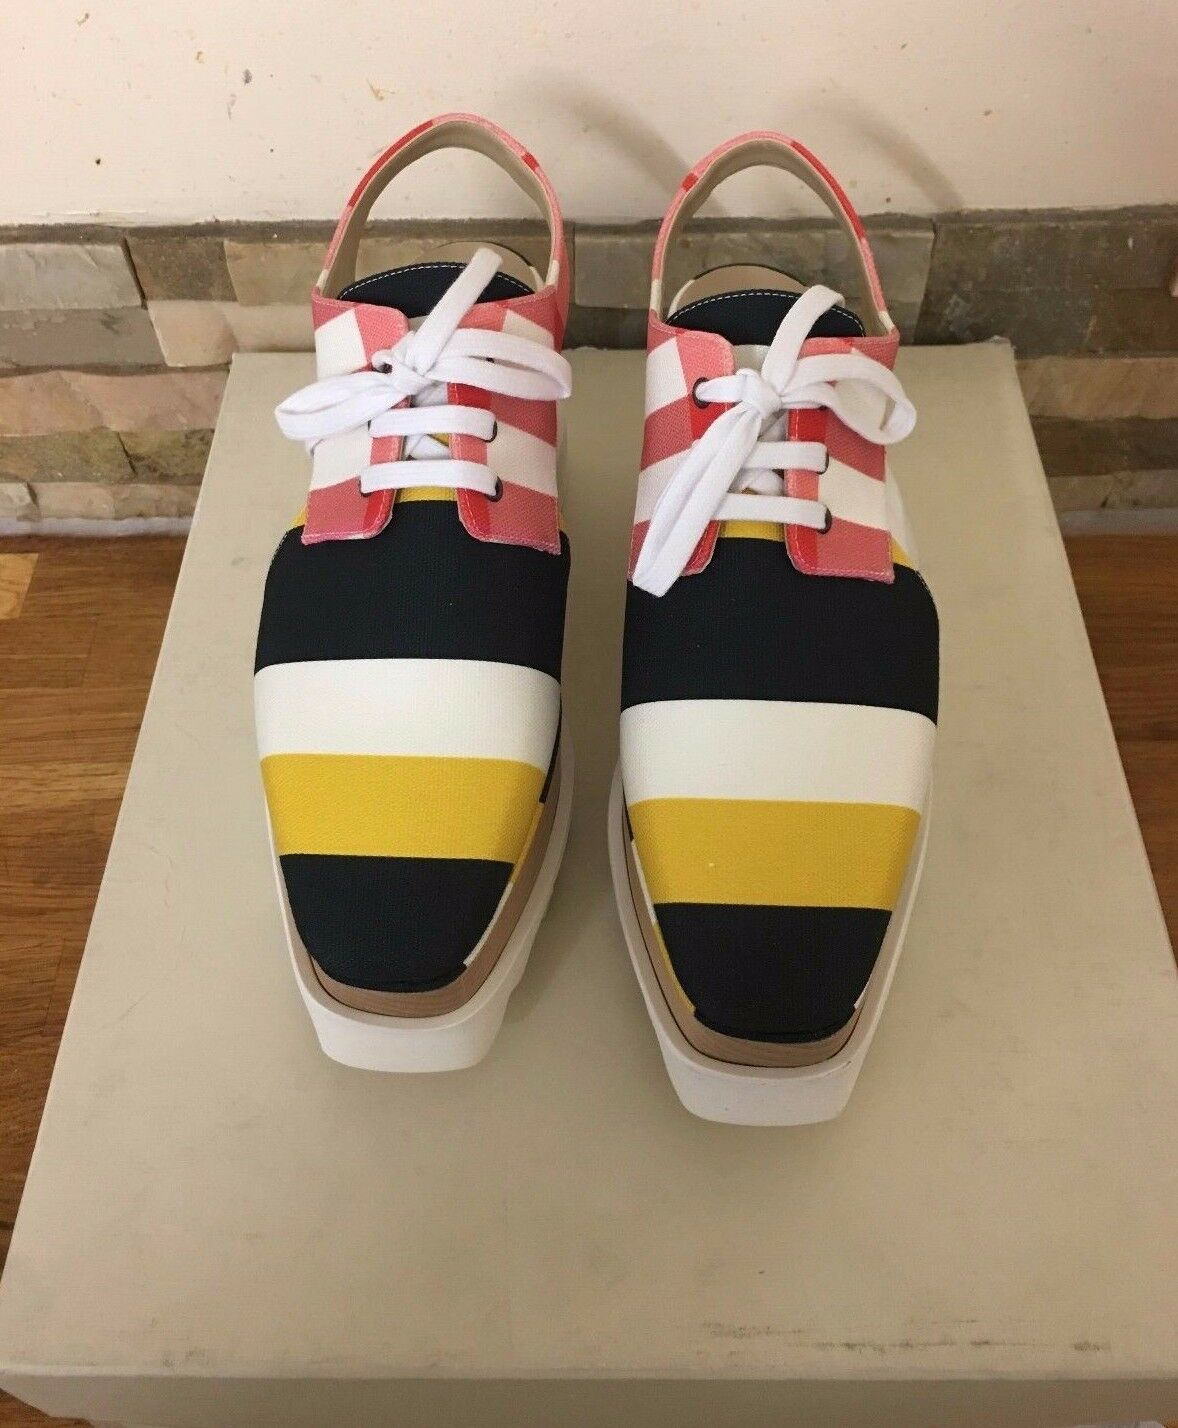 Stella Mccartney Elyse Checked Checked Checked Lace-Up Cut-Out Platform schuhe UK 3 EU 36 670bd8